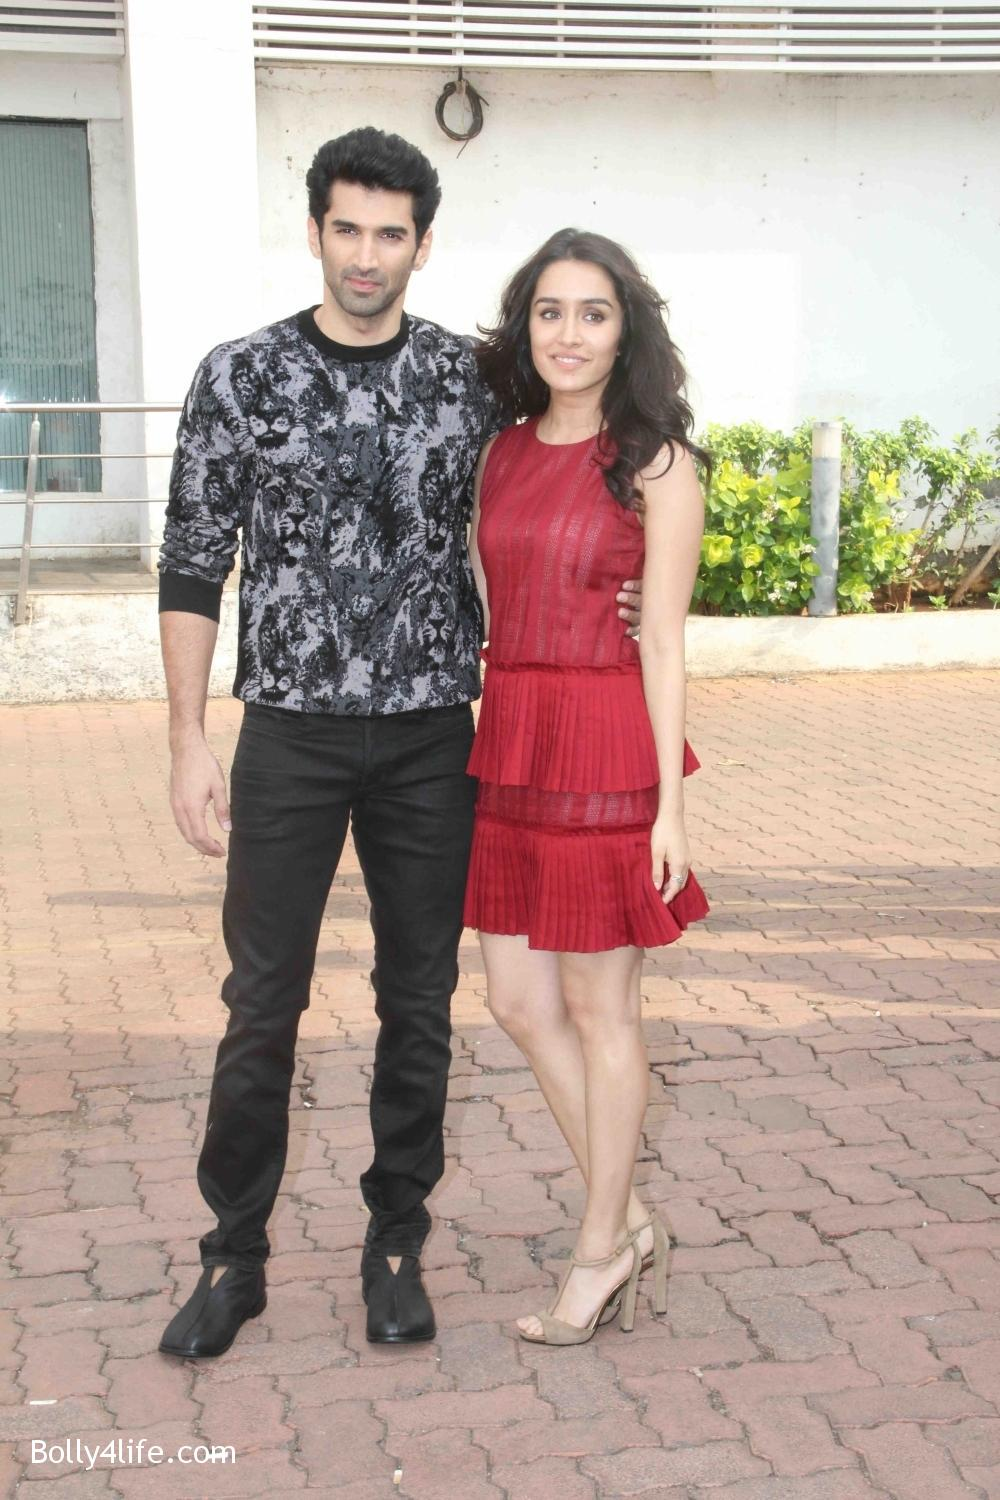 Shraddha-Kapoor-during-the-promotion-of-film-Ok-Jaanu-on-the-sets-Star-Plus-singing-reality-show-Dil-Hai-Hindustani-5.jpg